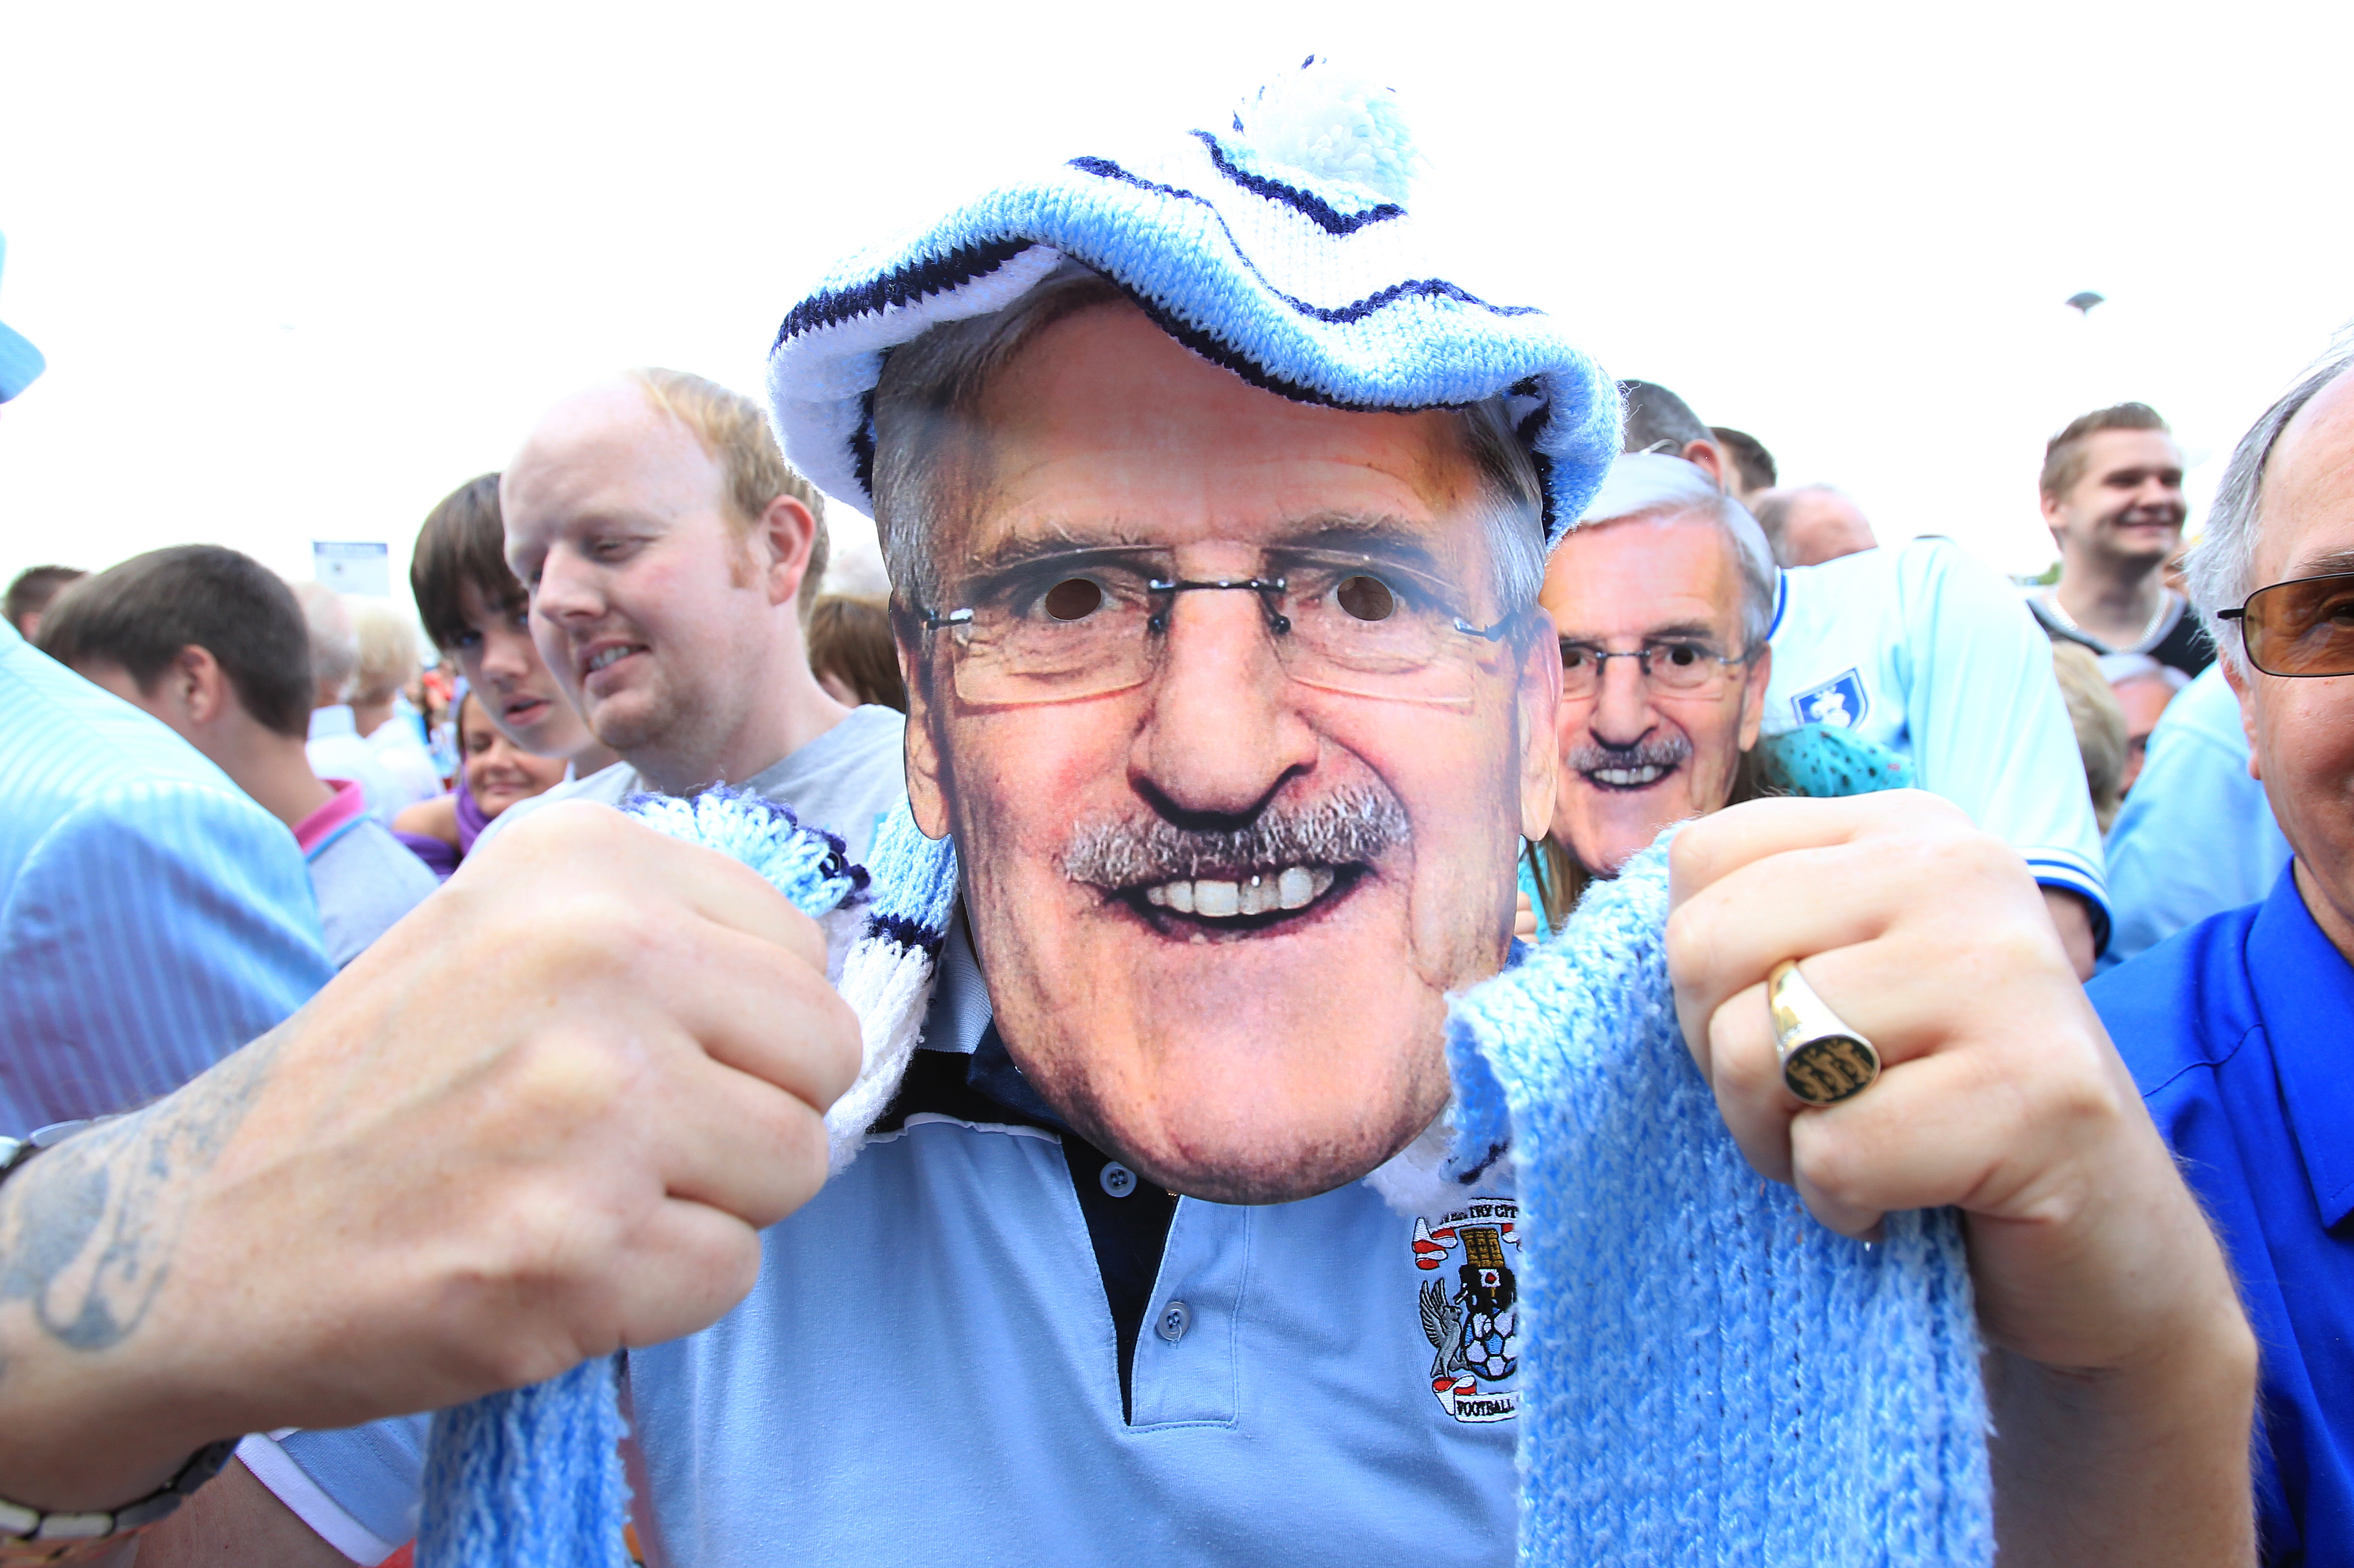 Soccer - Jimmy Hill Statue Unveiling - Ricoh Arena